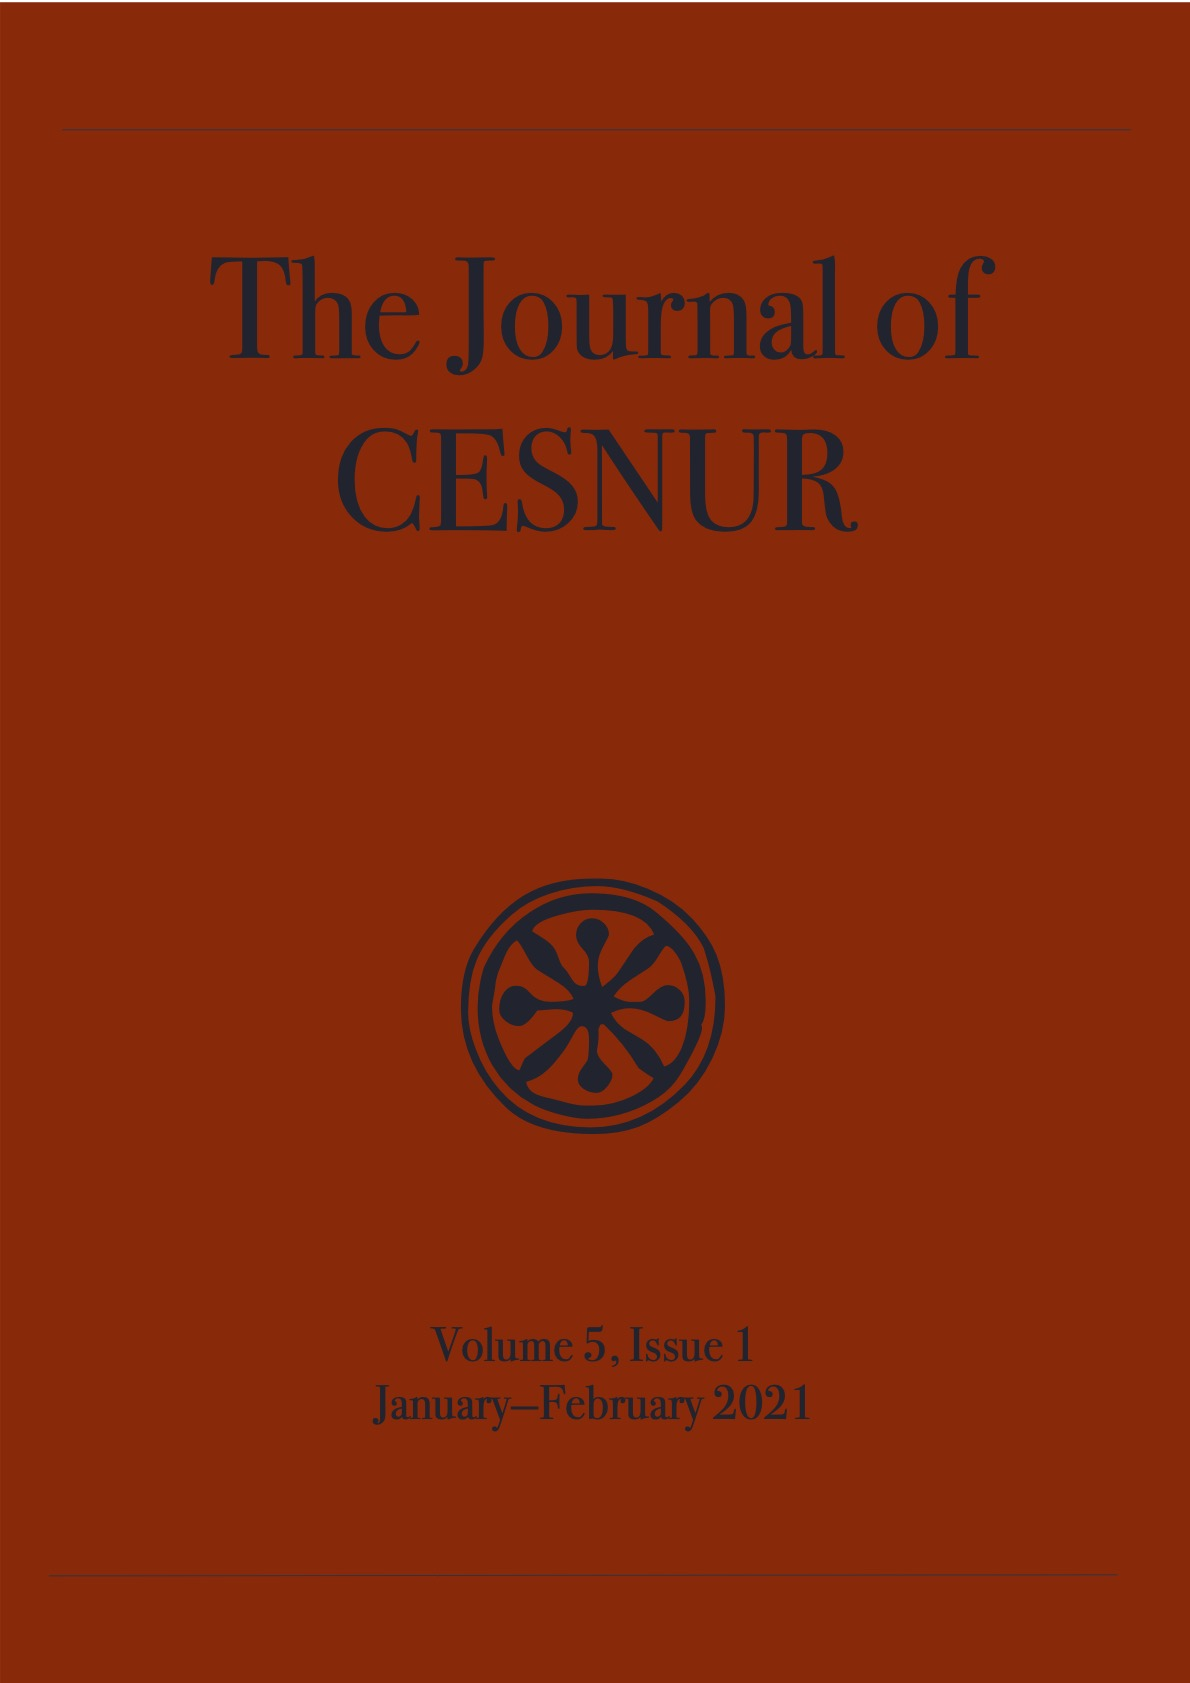 The Journal of CESNUR, volume 4, issue 5